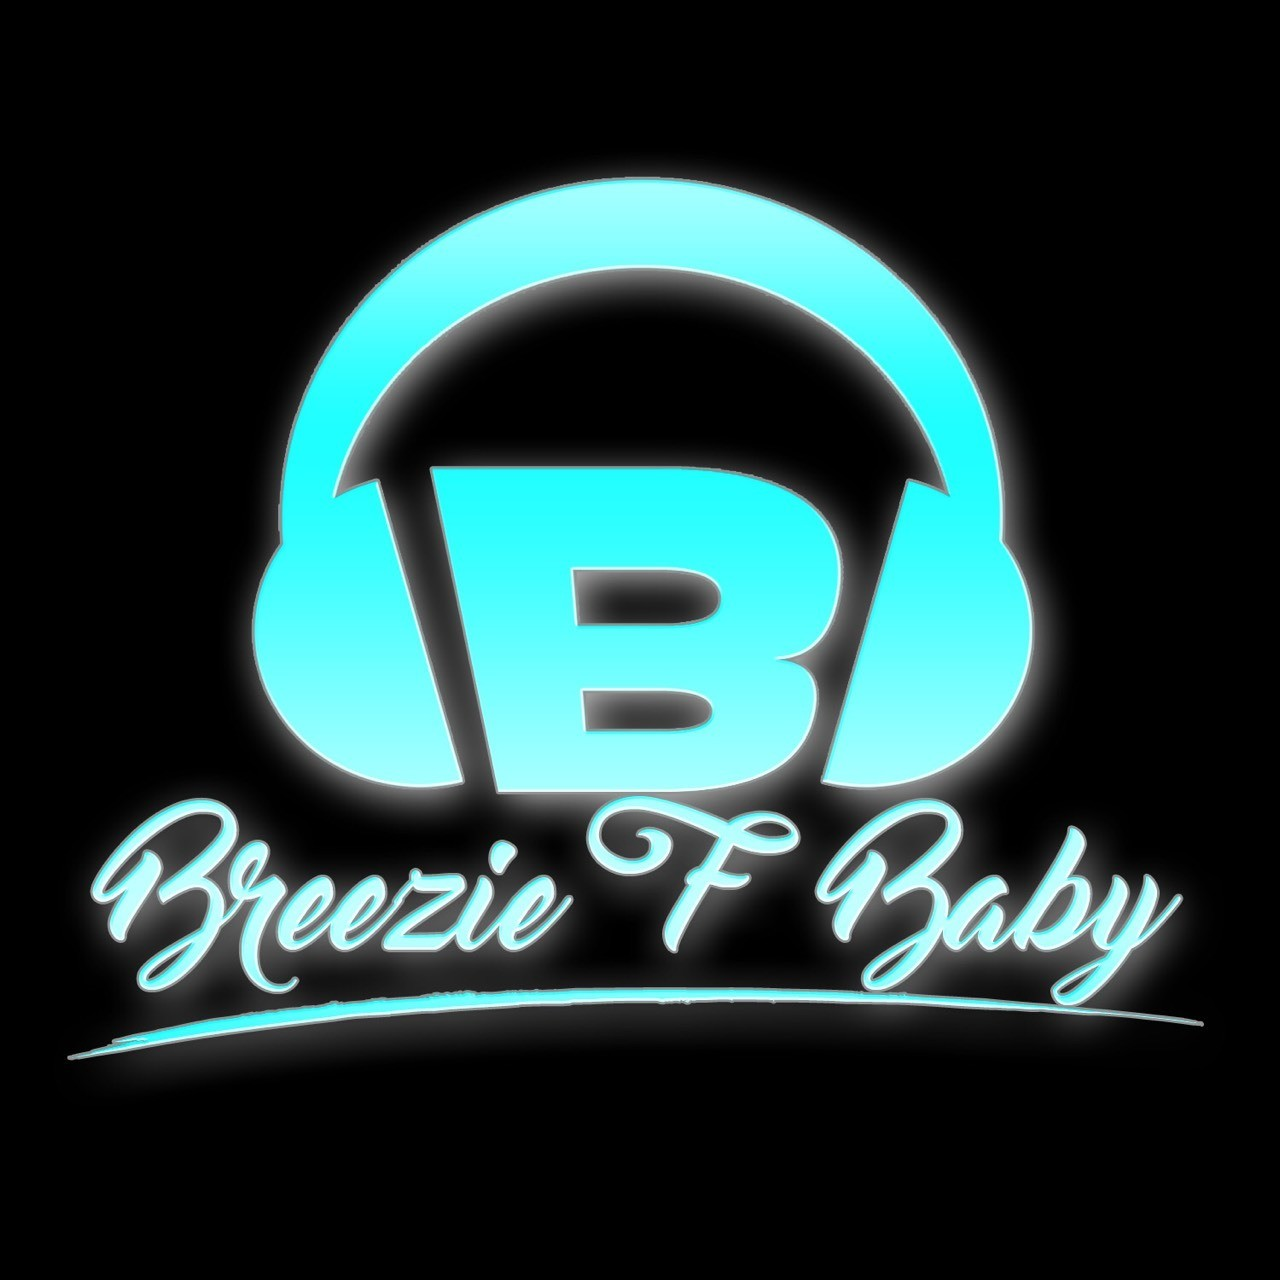 Check out Breezie F Baby Promotions and Marketing on Facebook